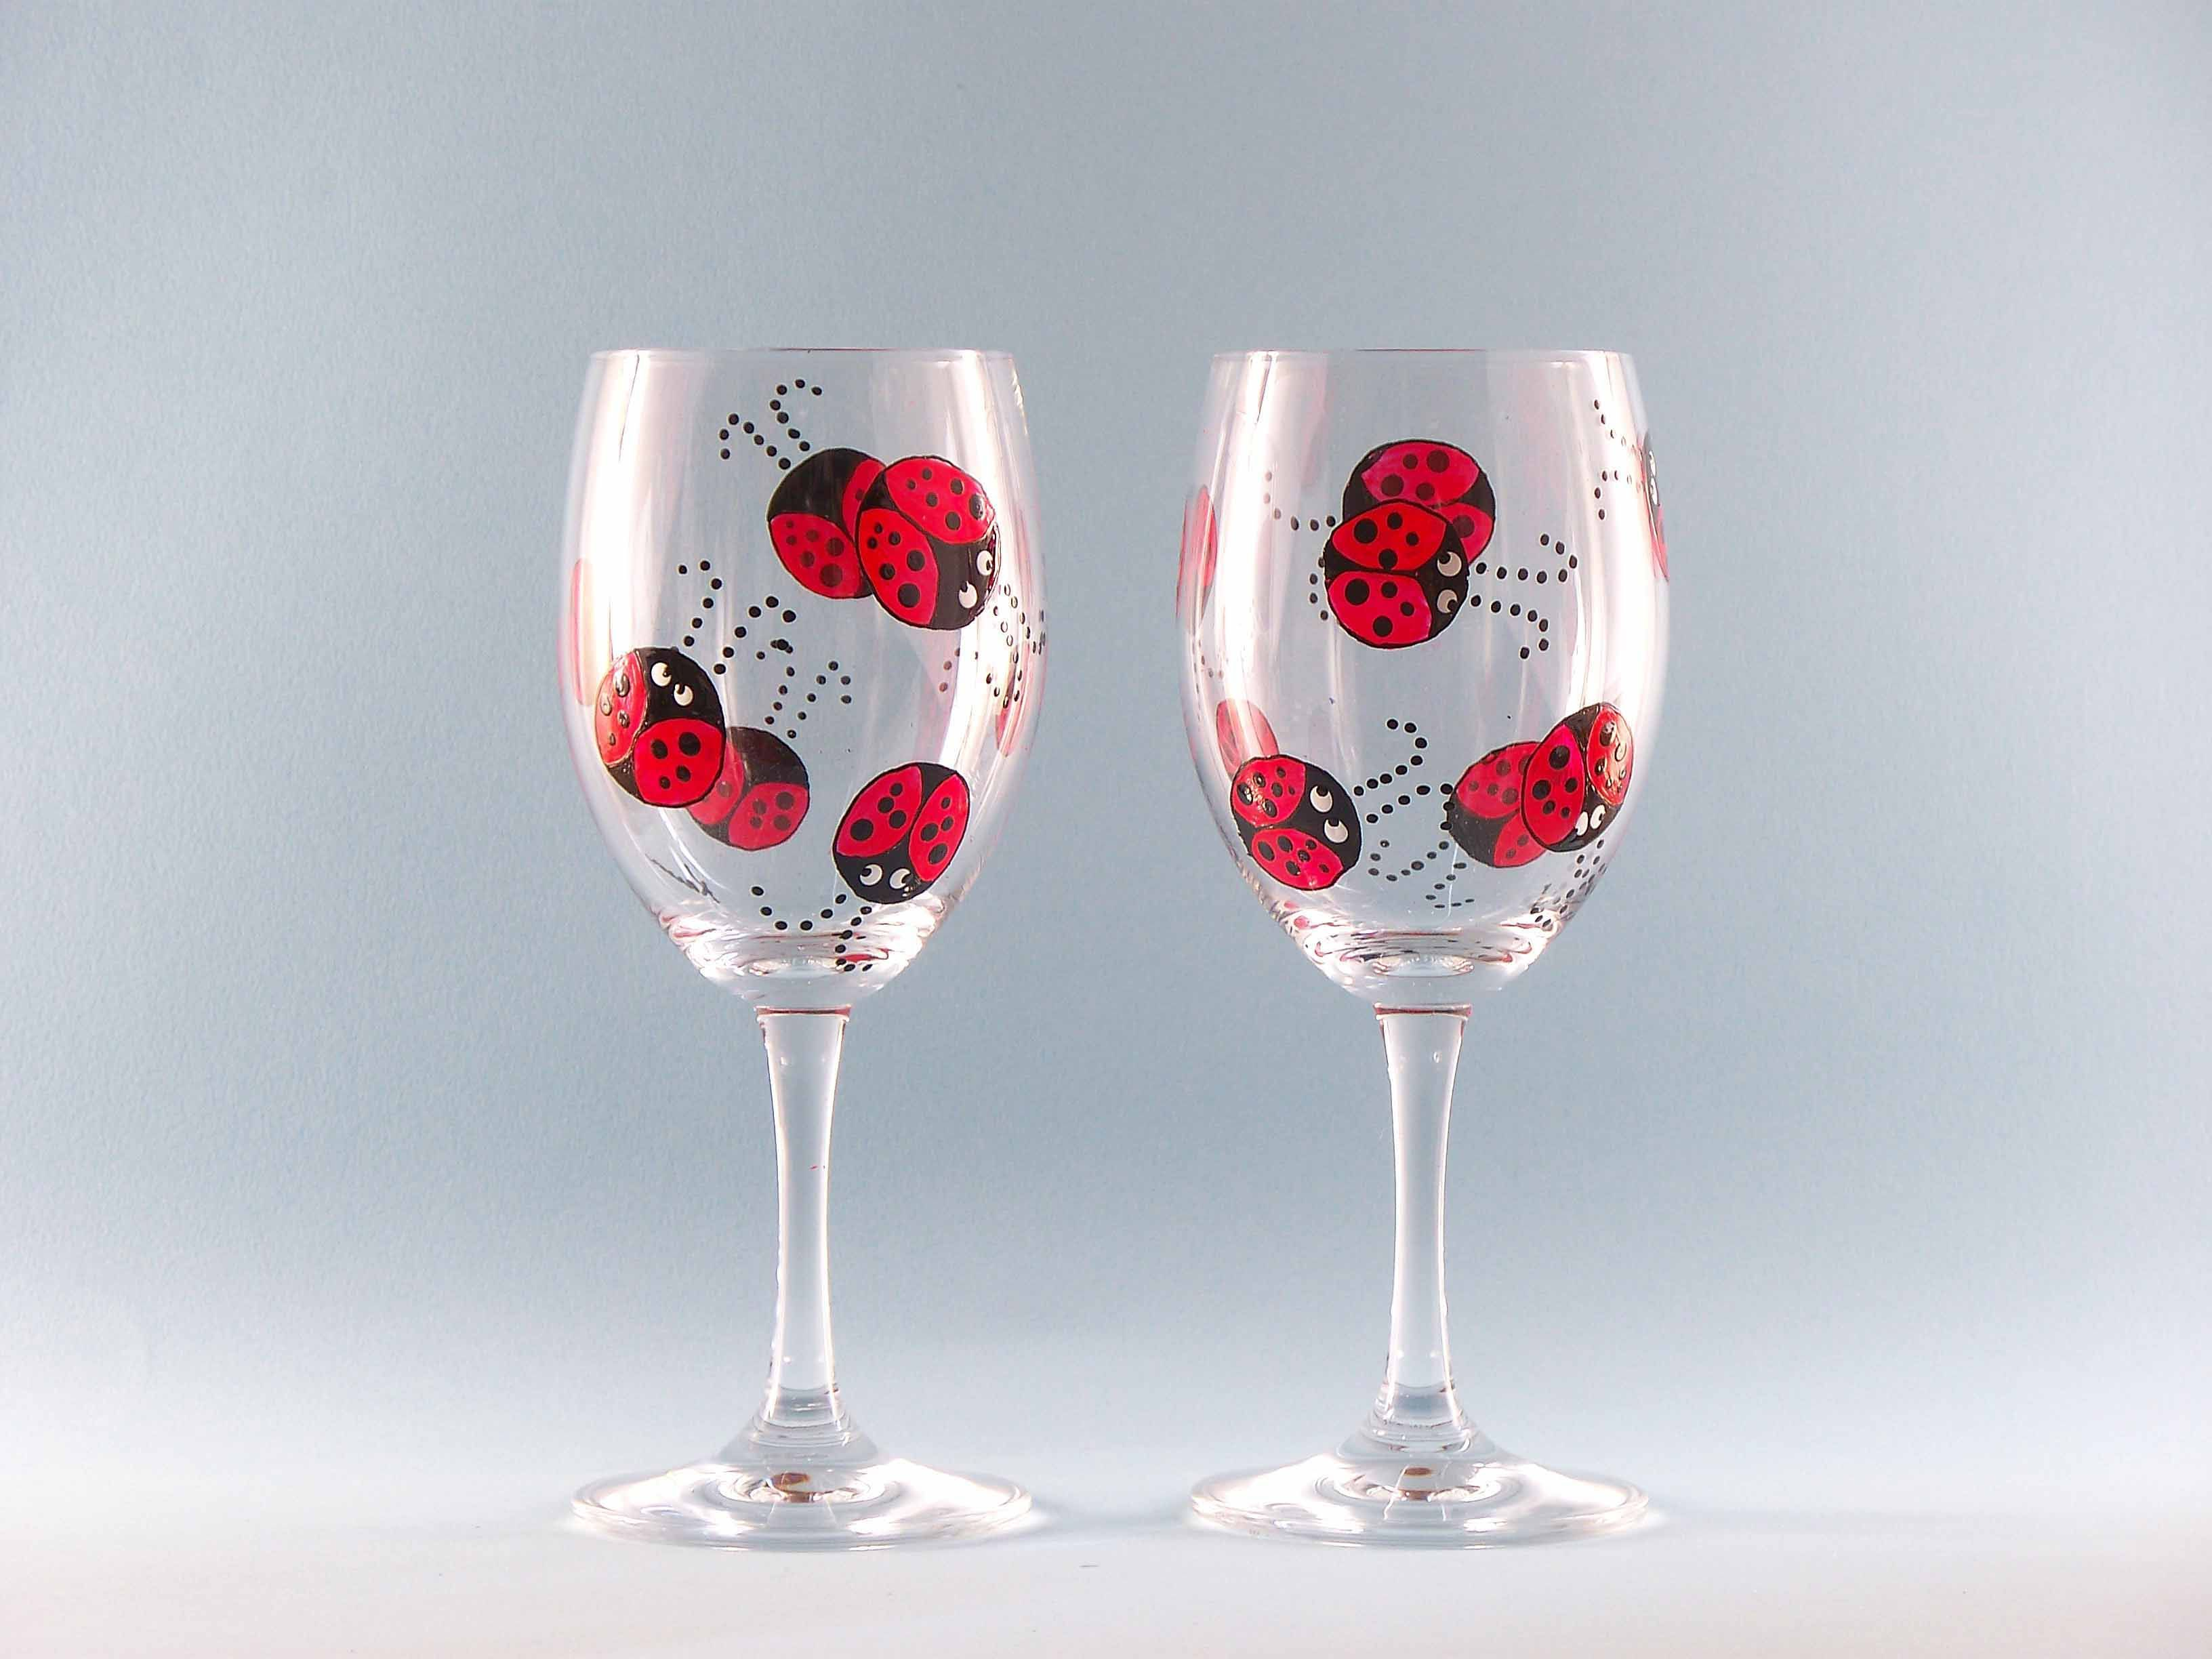 17 best images about inspired by wine glass painting on pinterest paint pens painted wine glasses and wine glass charms - Wine Glass Design Ideas